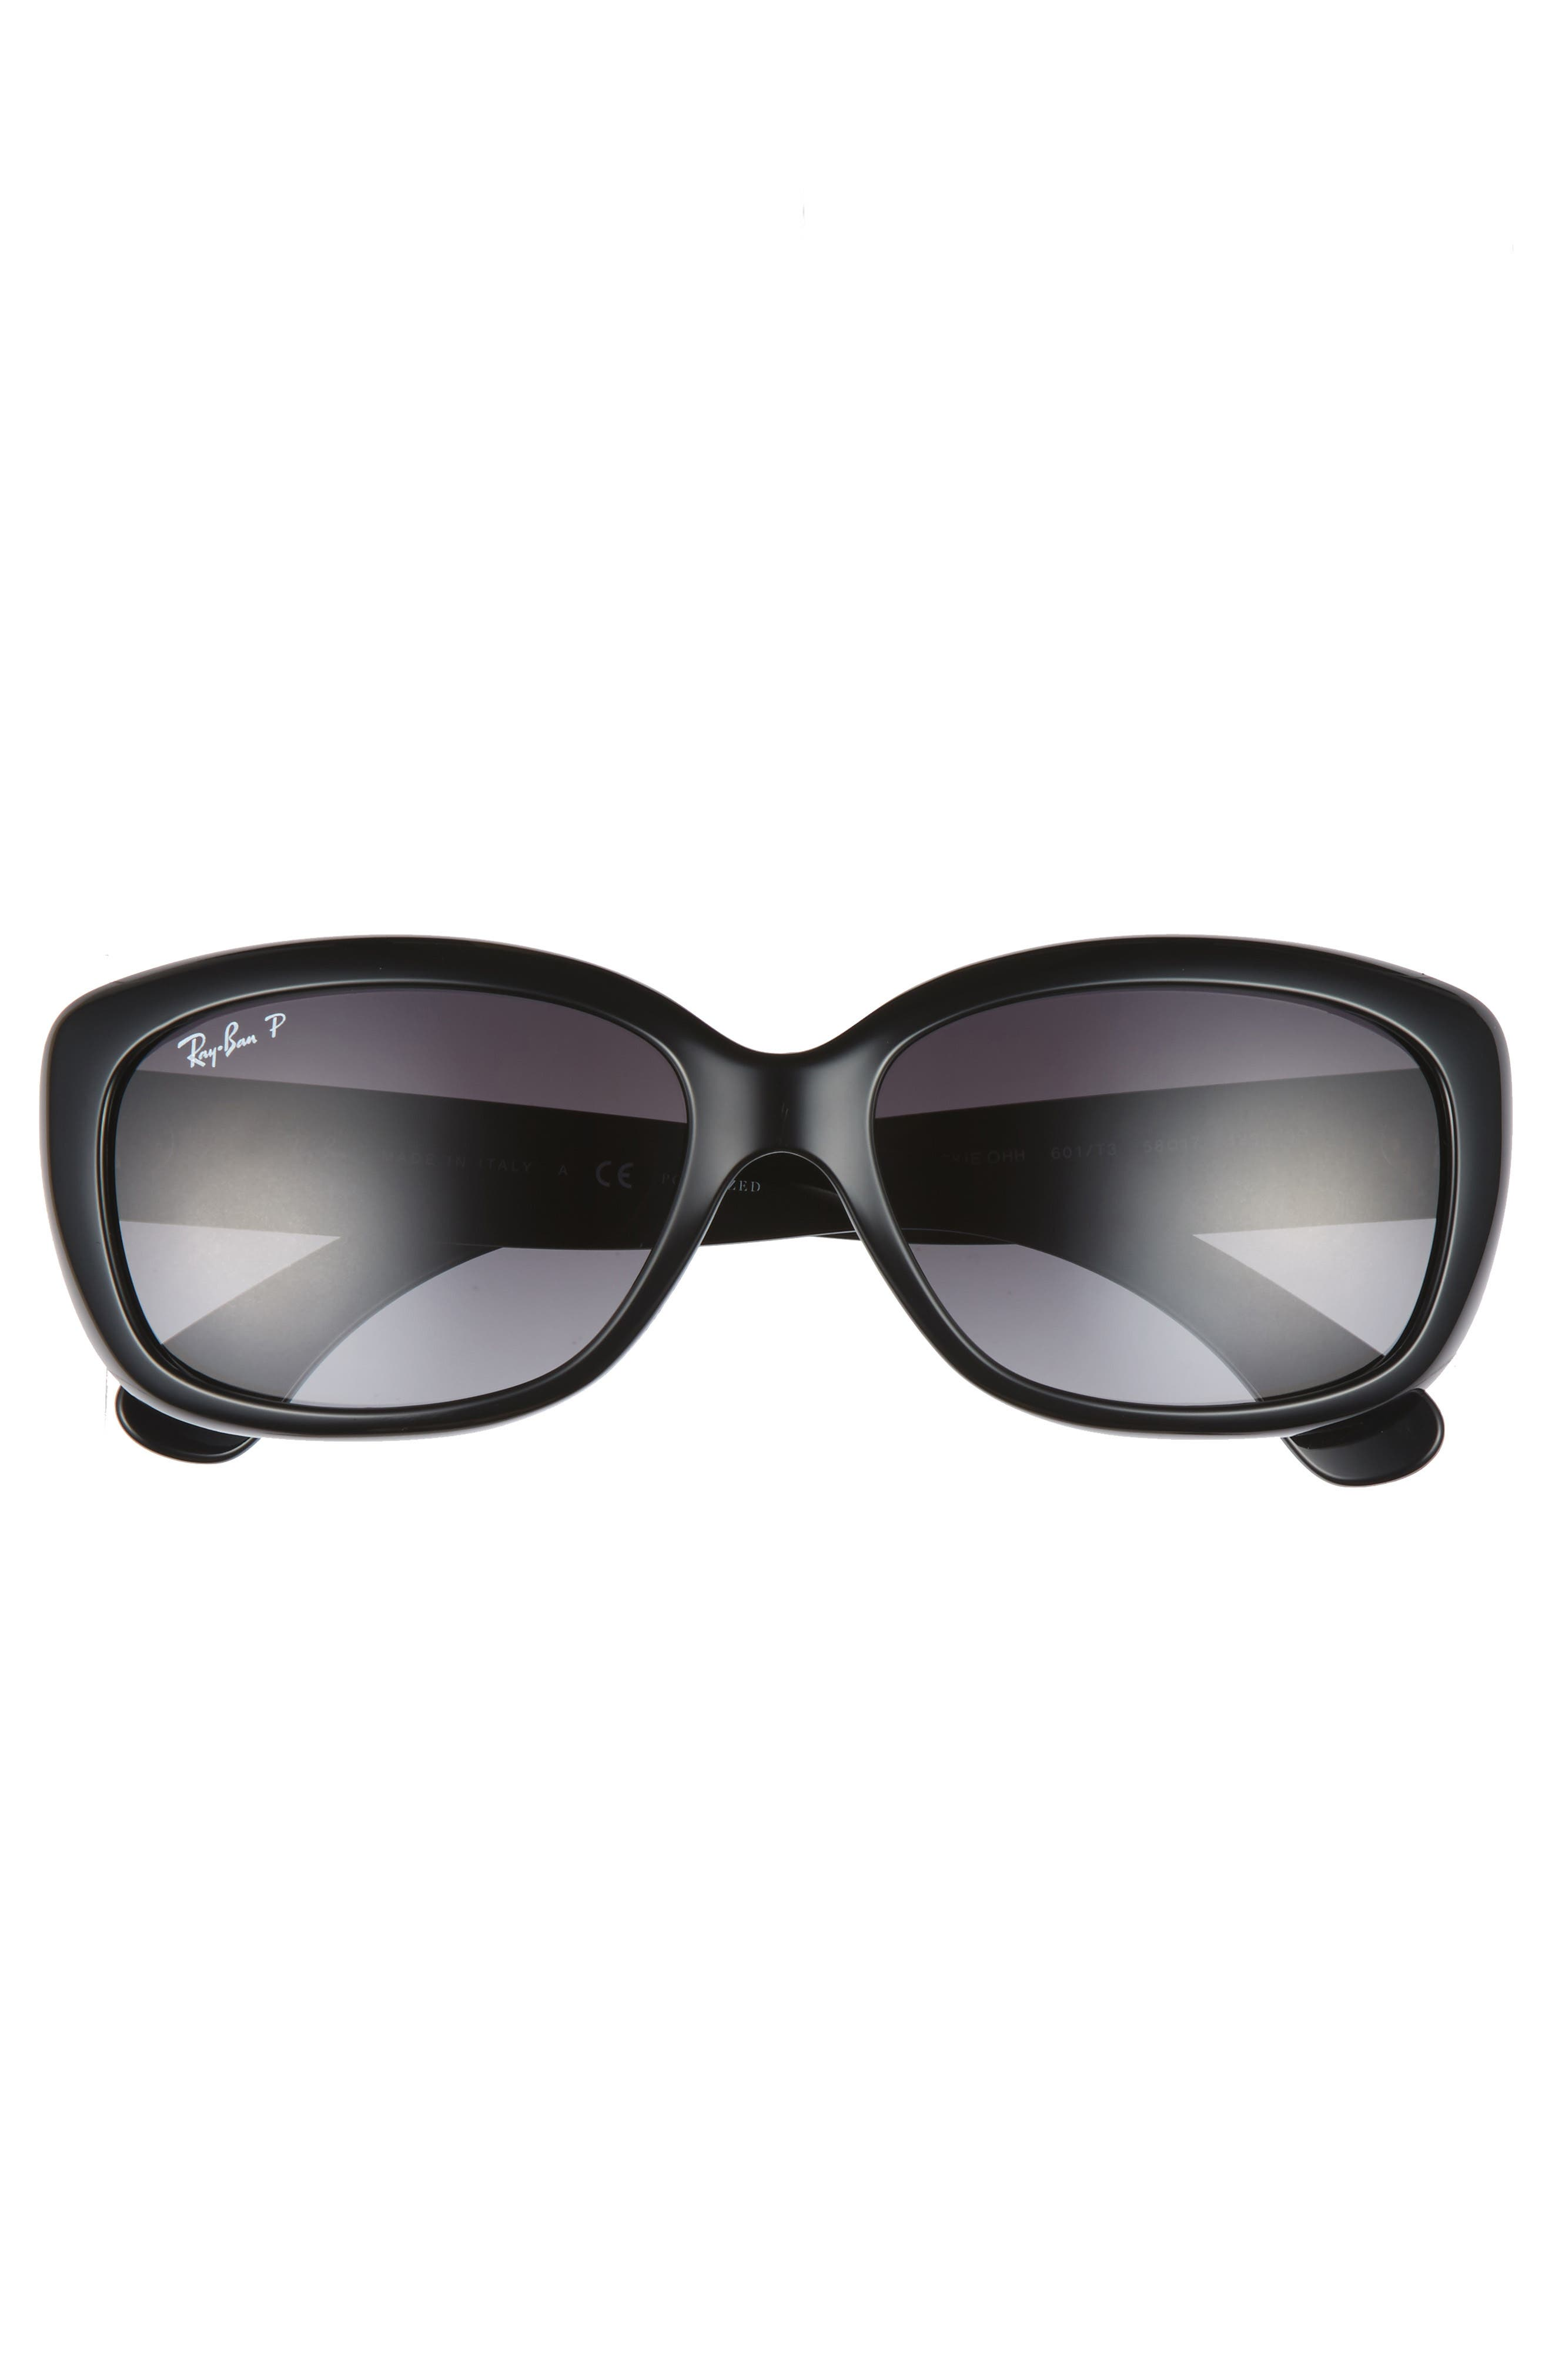 58mm Polarized Sunglasses,                             Alternate thumbnail 3, color,                             BLACK GREY